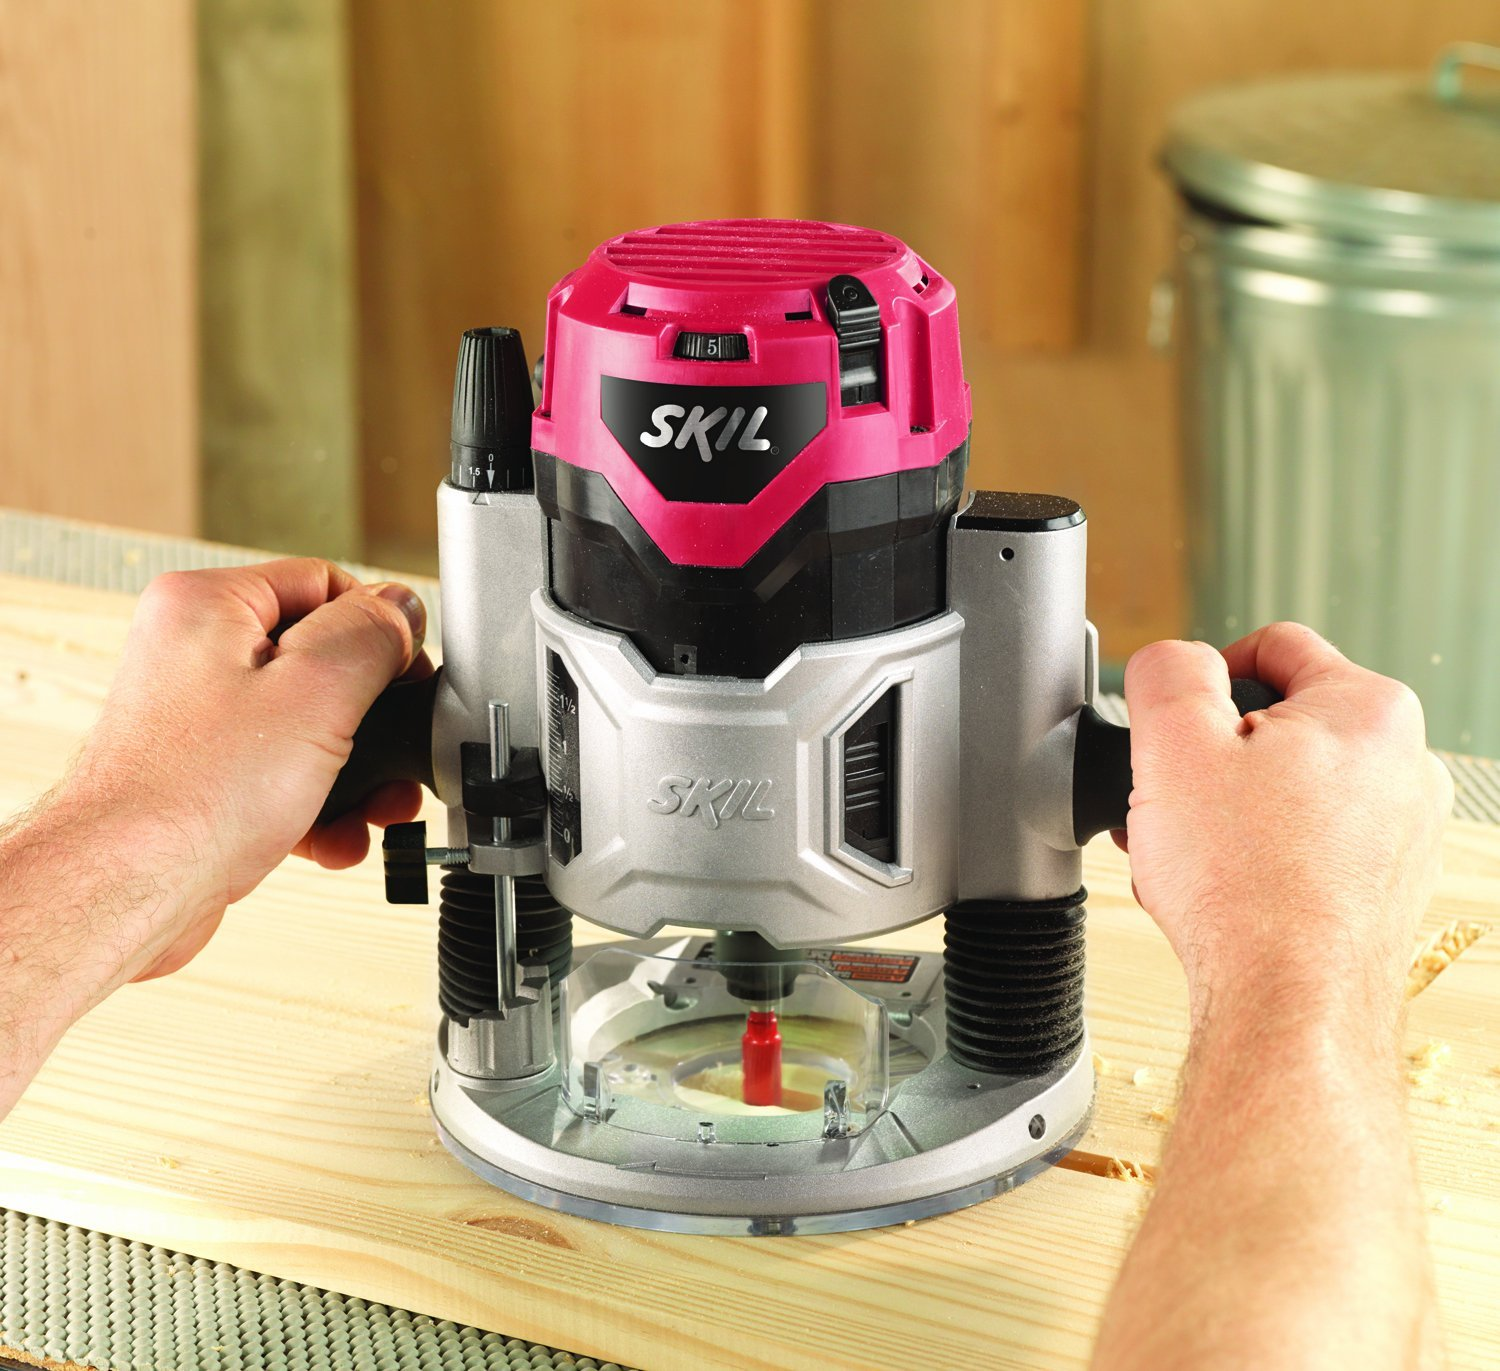 Benefits of using a wood router